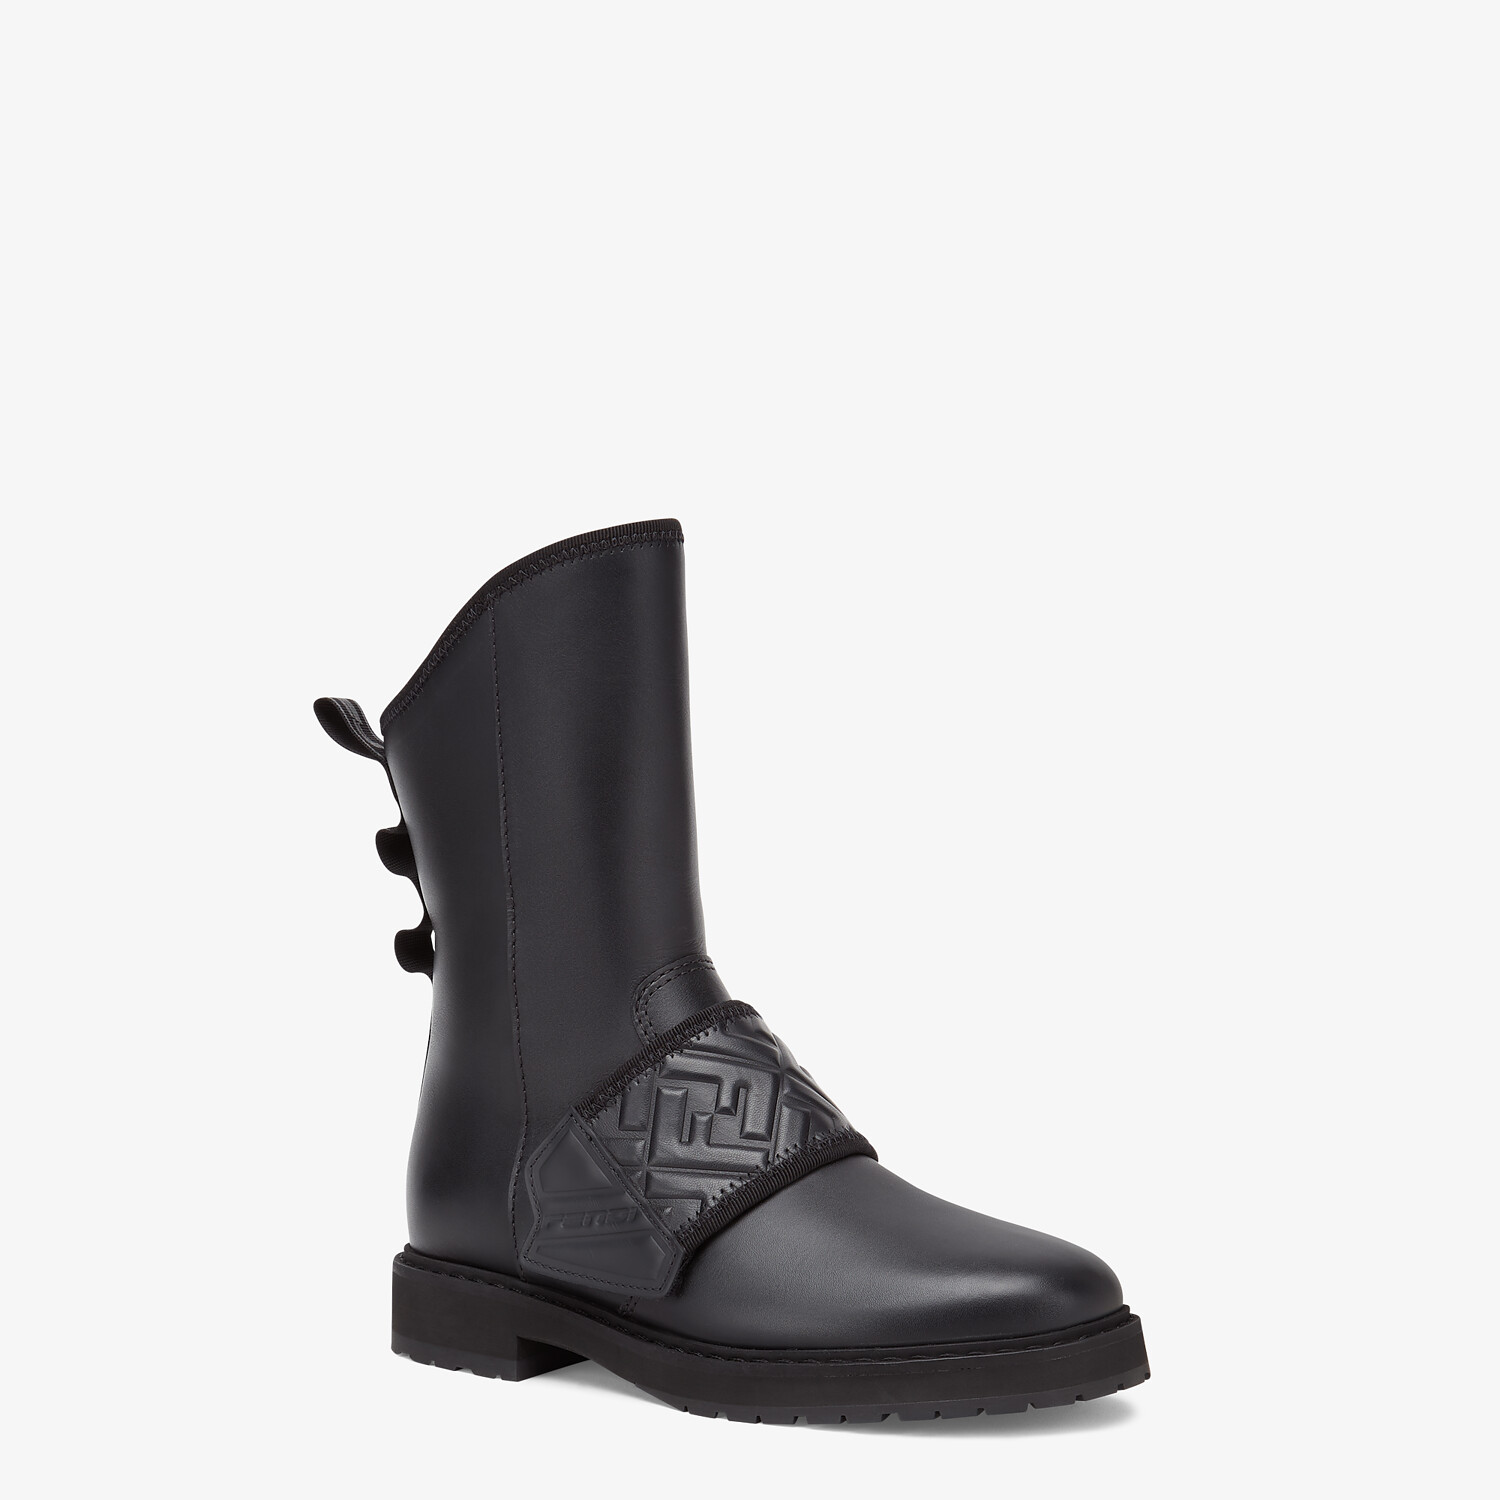 FENDI BIKER BOOTS - Black leather ankle boots - view 2 detail